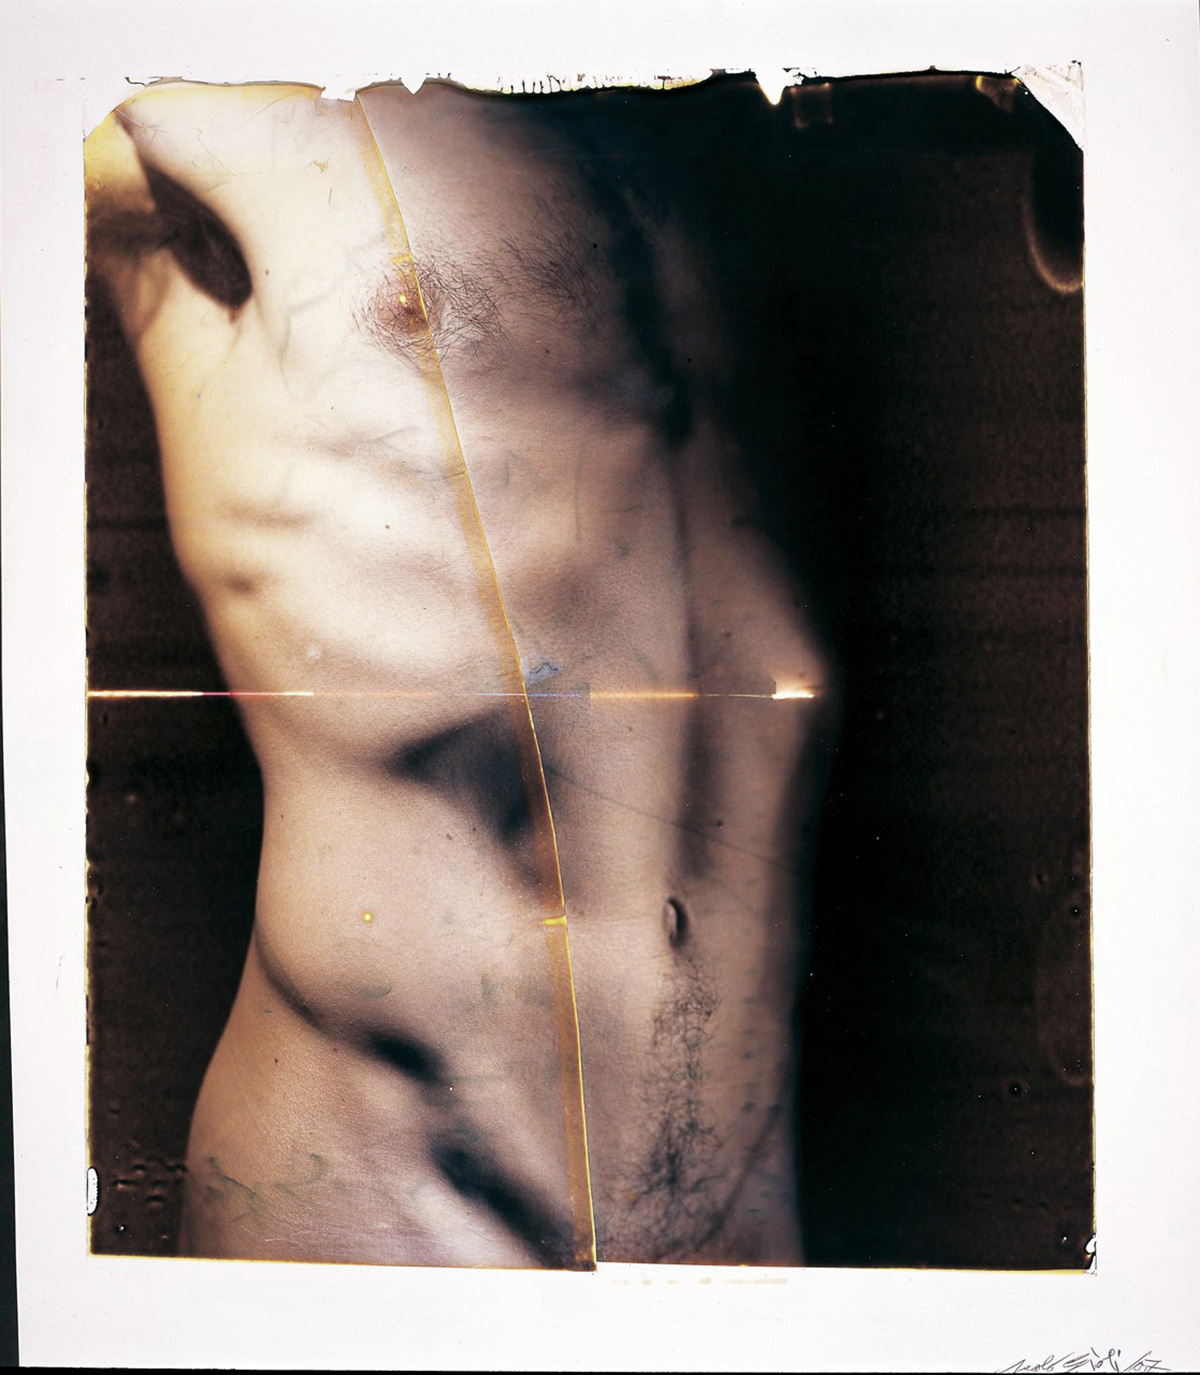 Paolo Gioli, Vessazioni (Abuses), 2007, Polaroid 20x24'' and transfers on acrylic, lens photograph